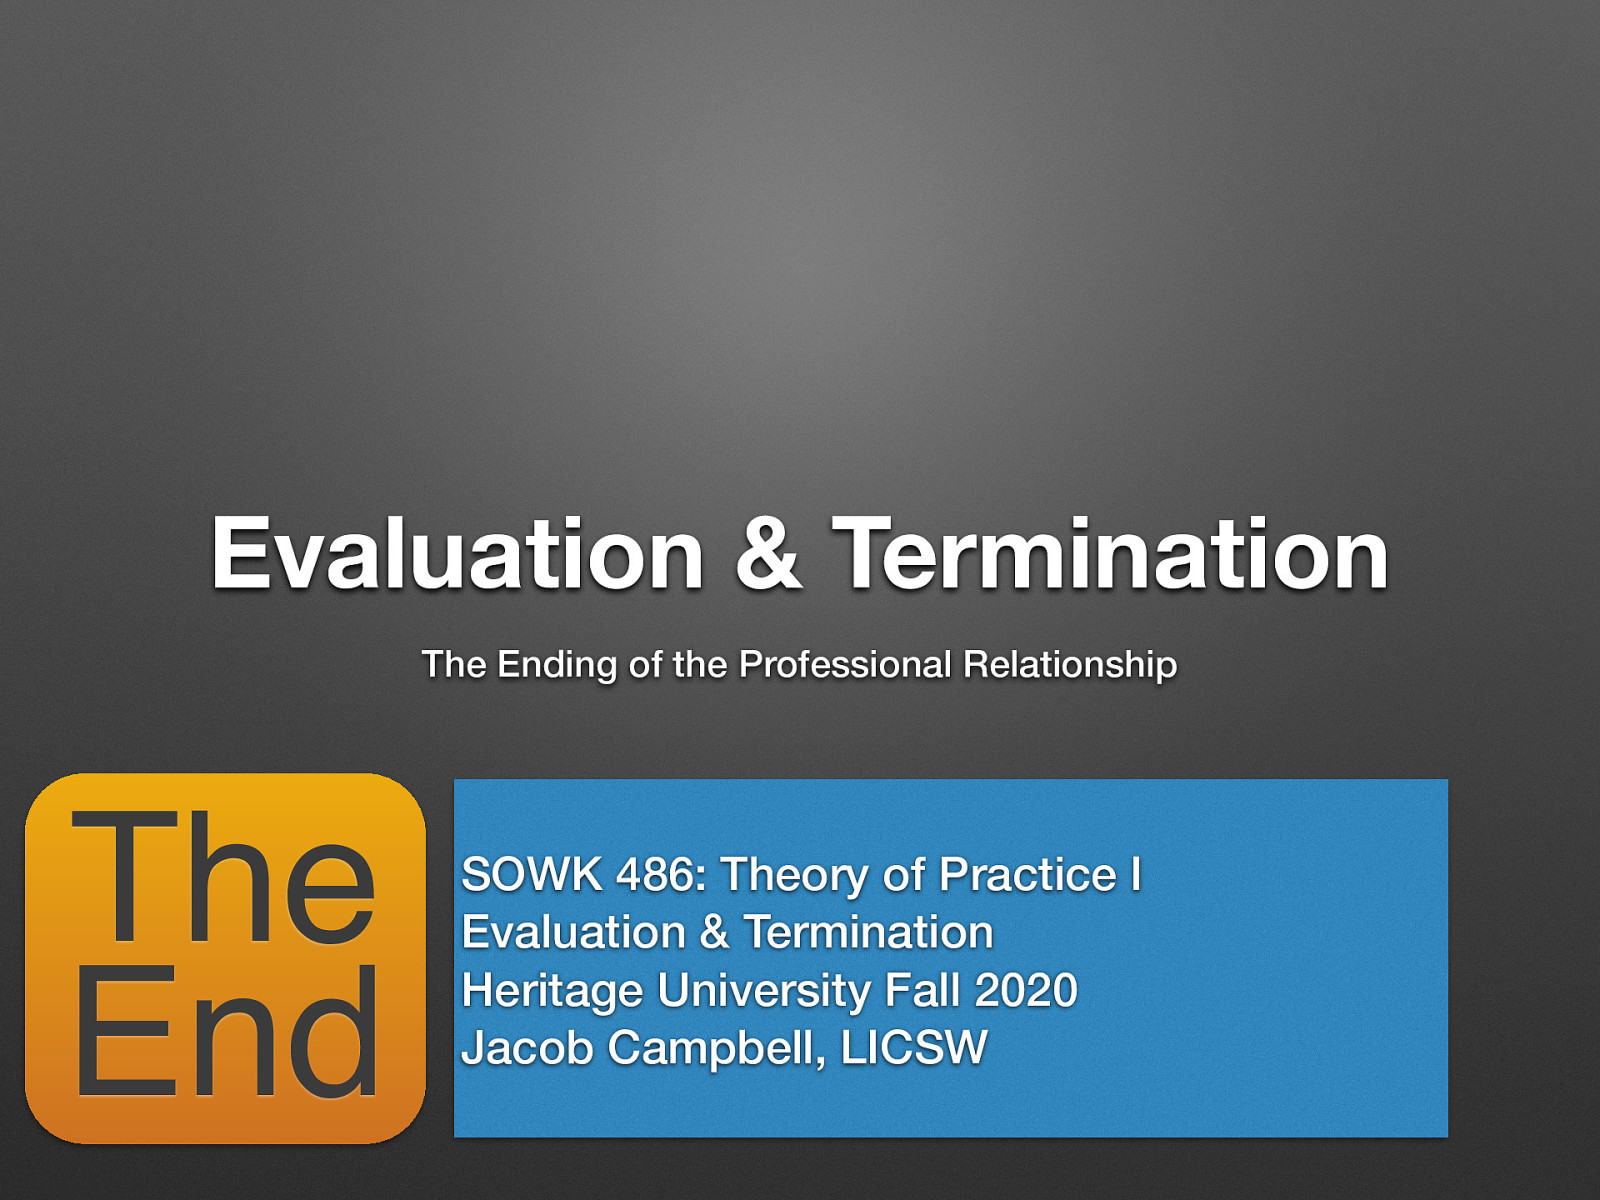 SOWK 486 Week 14: Evaluation and Termination by Jacob Campbell